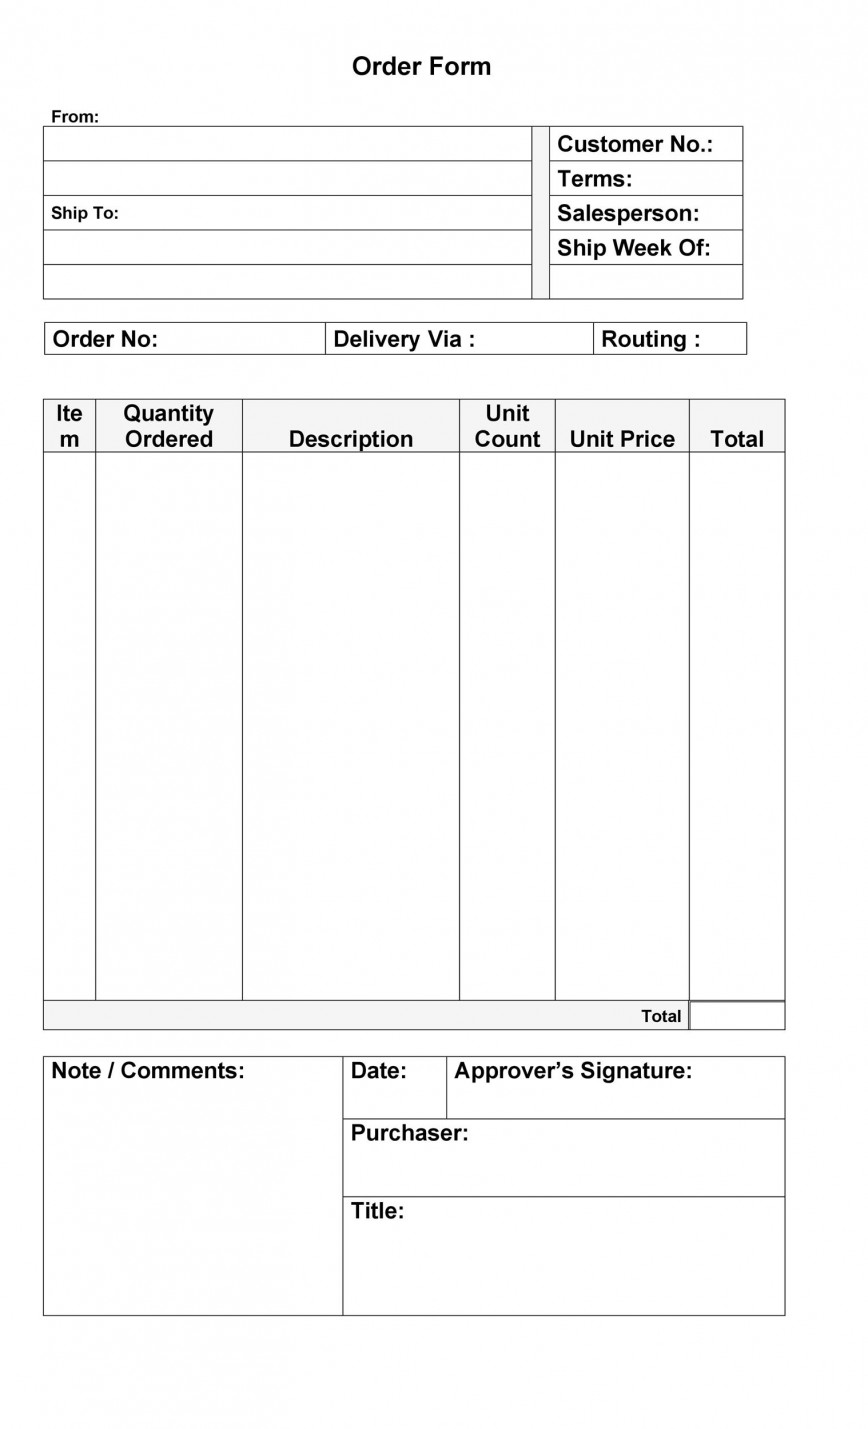 005 Marvelou Work Order Form Template Highest Clarity  Request Excel Advertising Company Free868